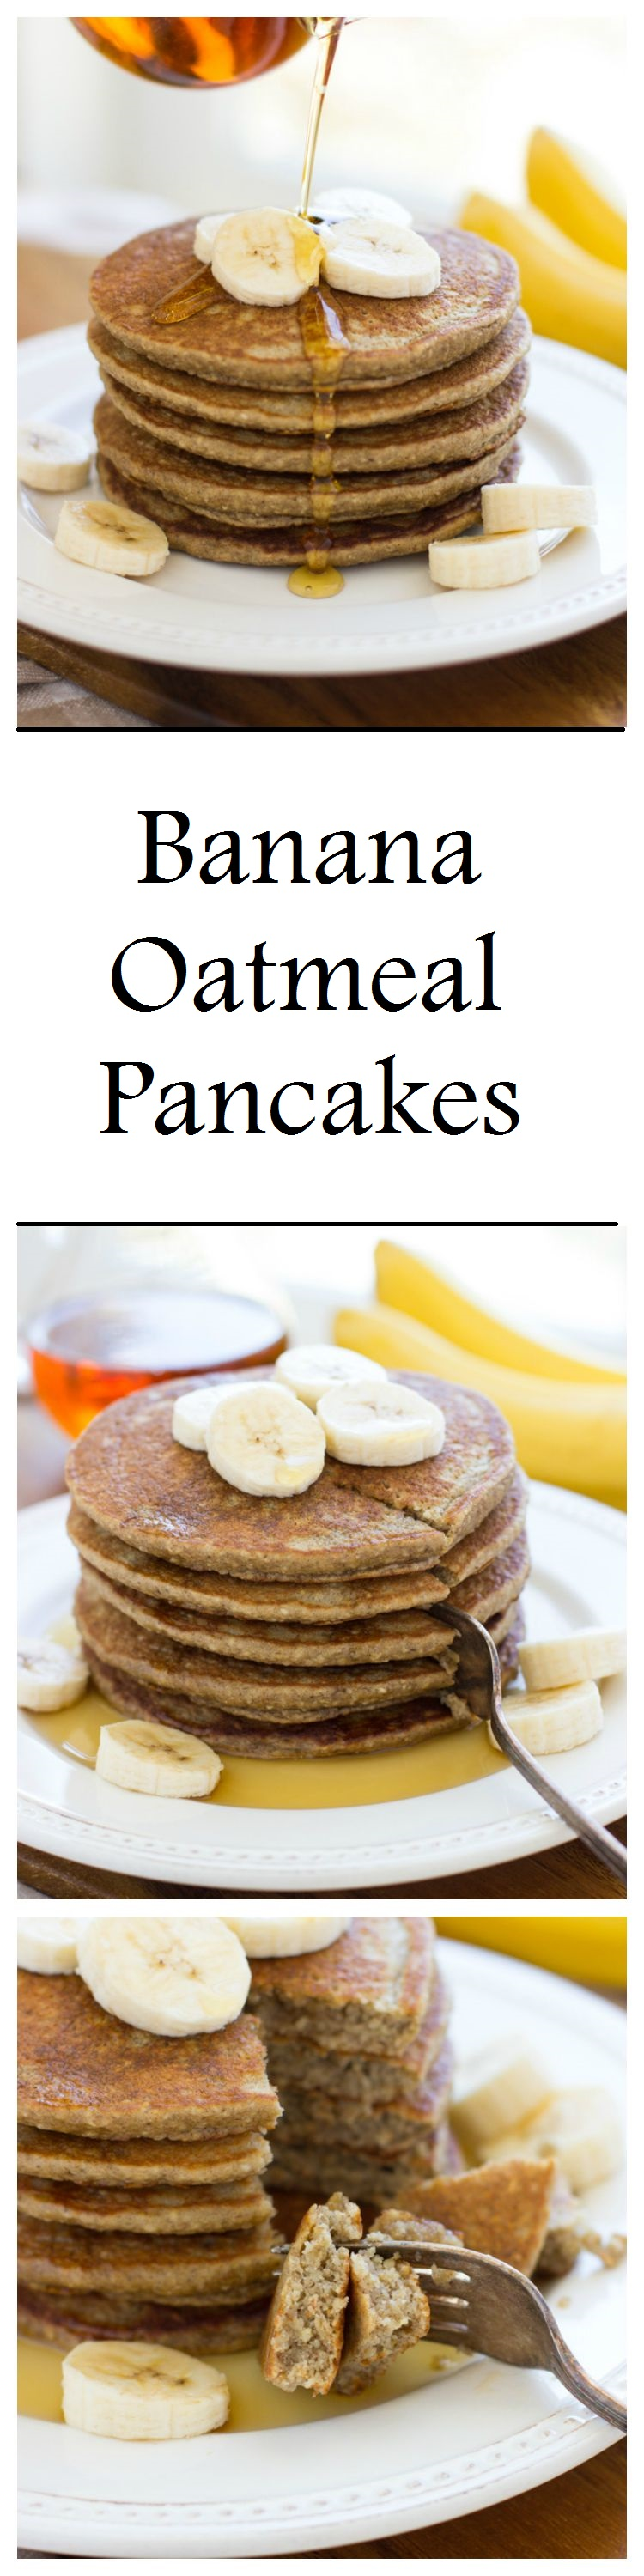 Banana Oatmeal Pancakes- light, fluffy and naturally sweet. Just throw everything into the blender and your batter is ready to go! #glutenfree #dairyfree #cleaneating